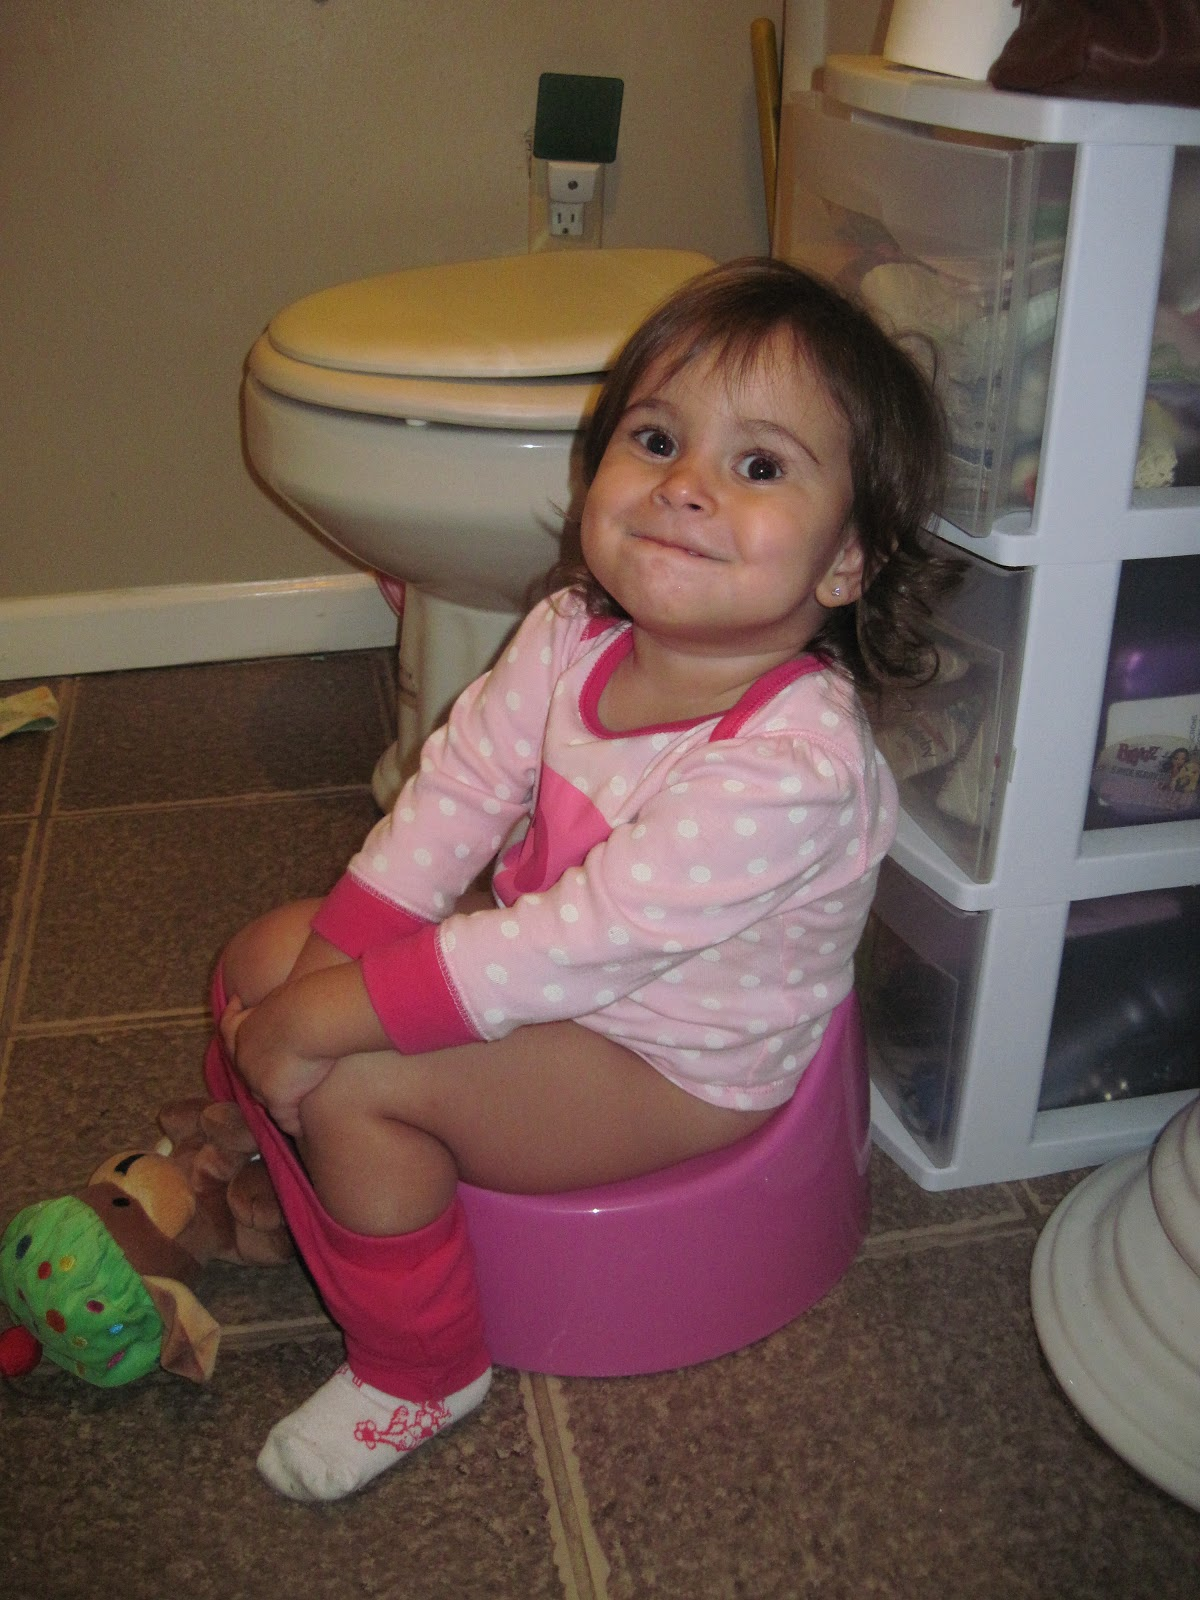 Little Girls Potty Training - Hot Girls Wallpaper